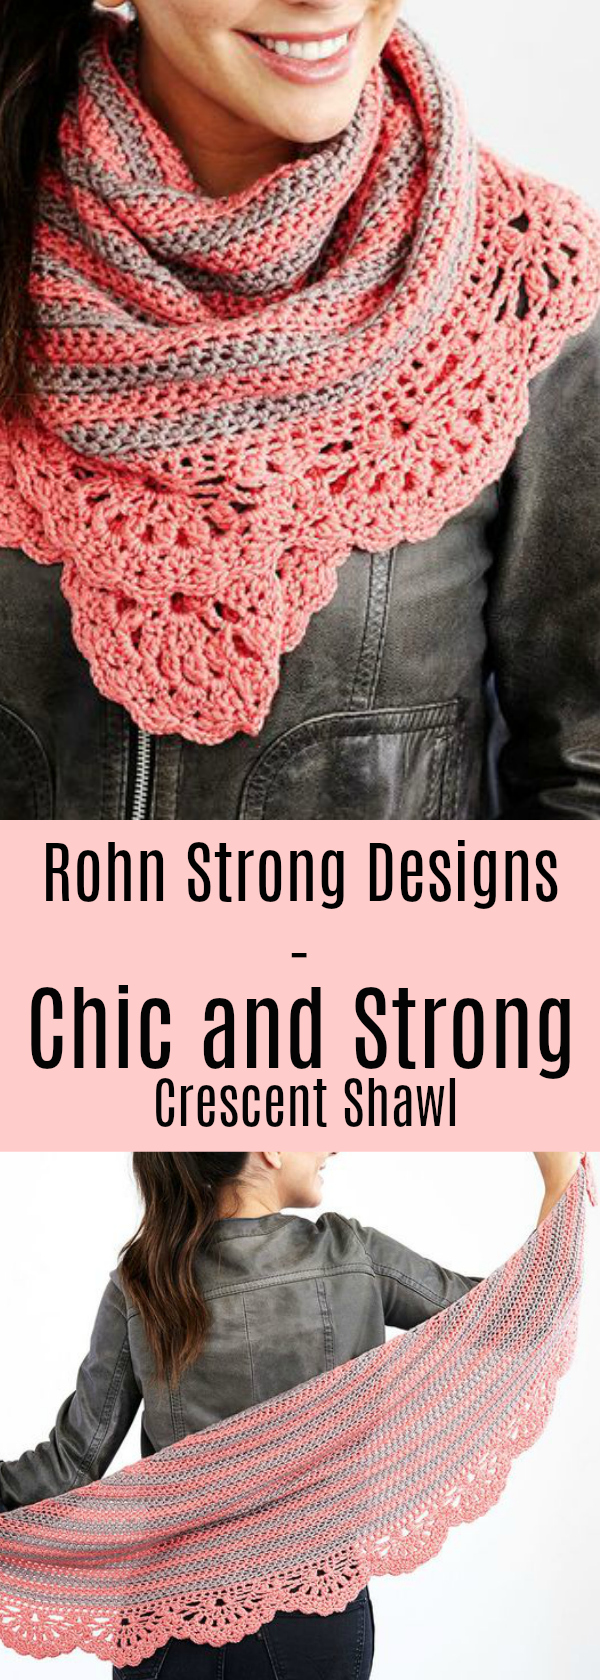 Pinterest - Chic and Strong - 1